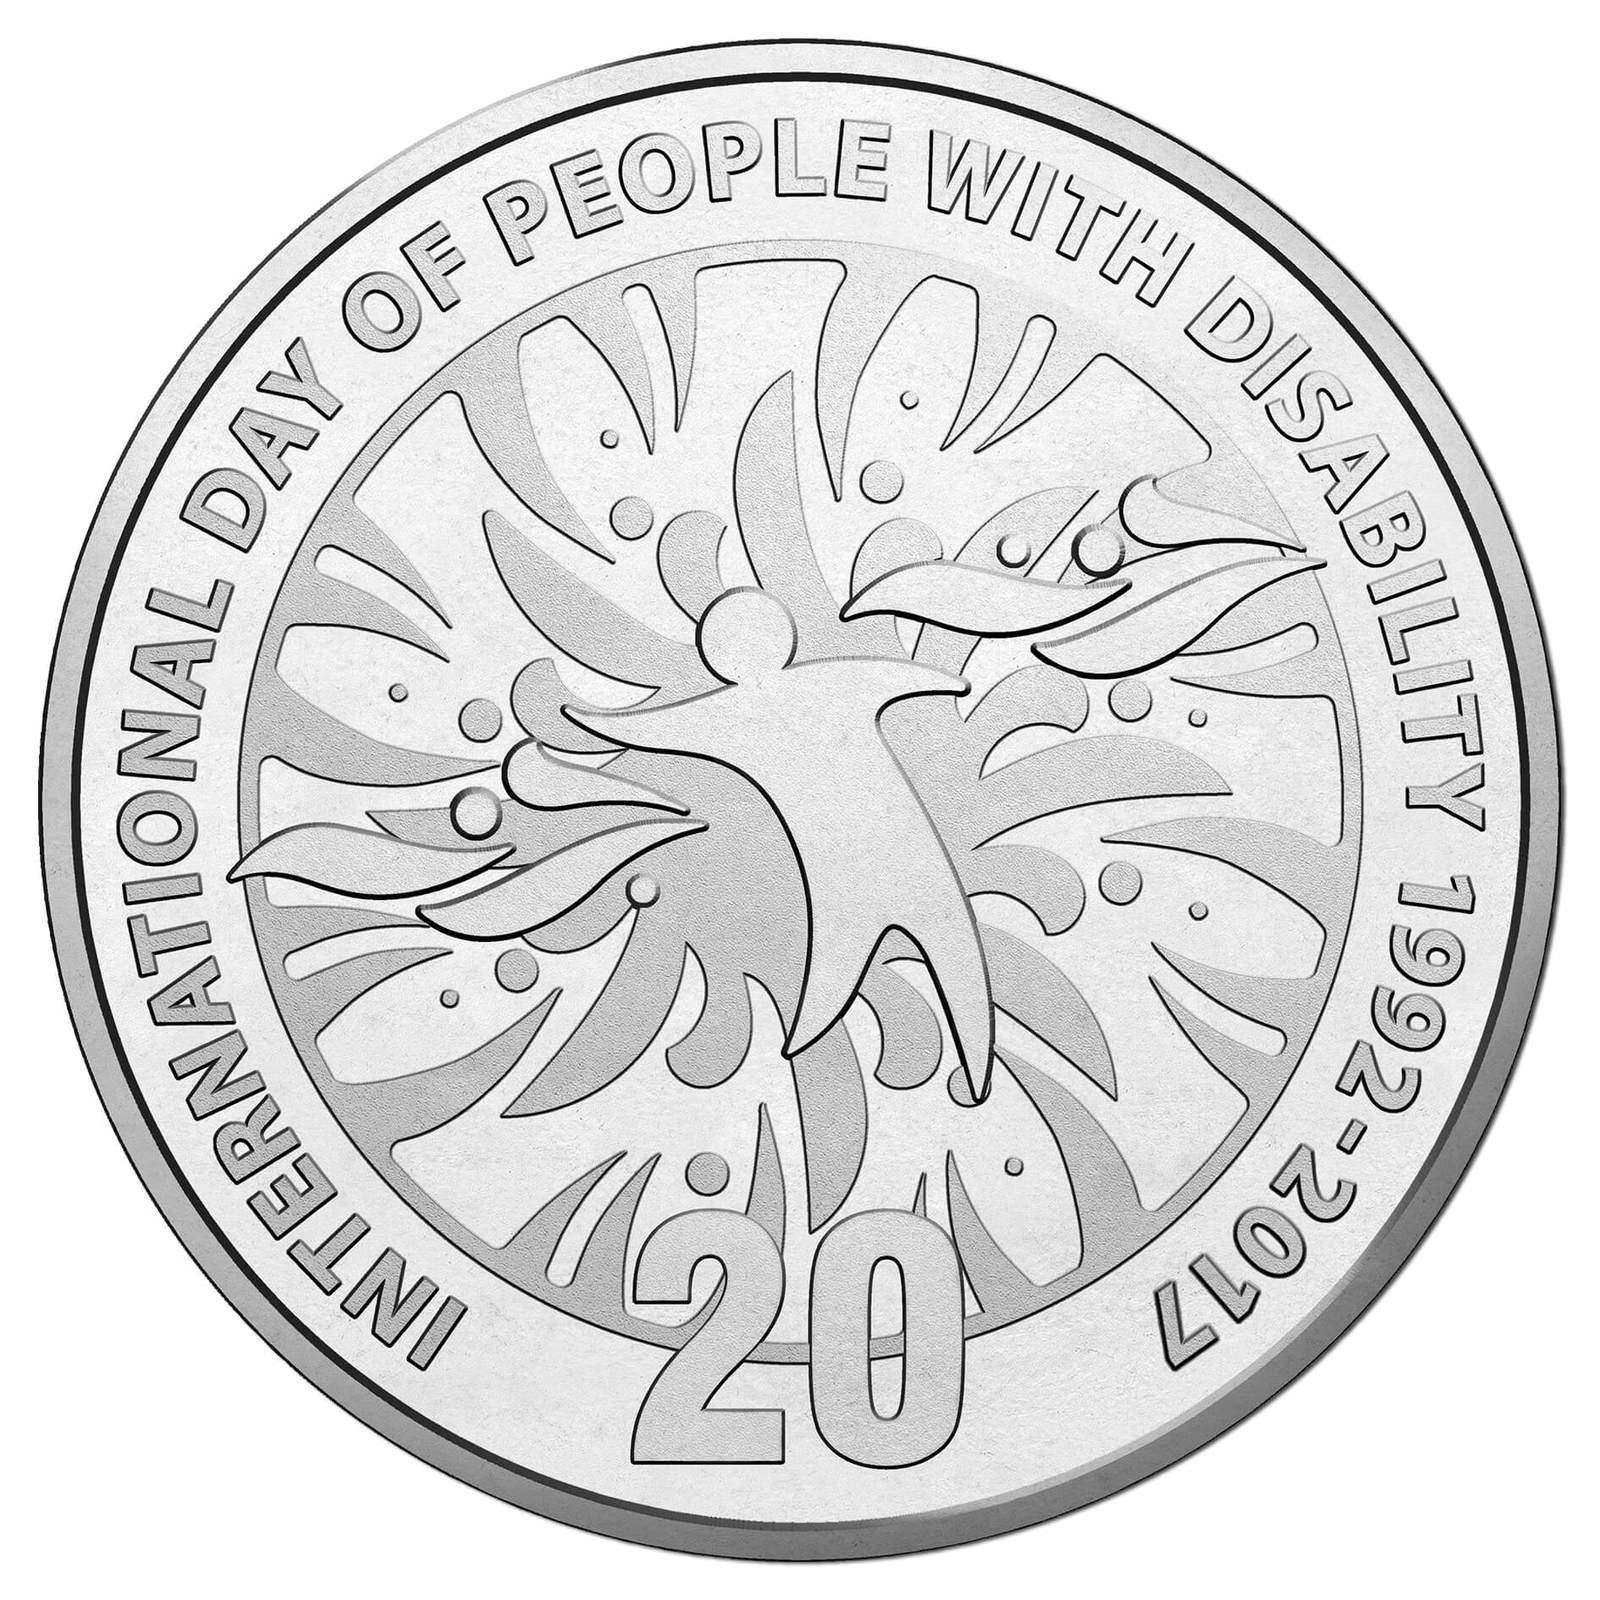 2017 20c International Day of People with Disability Unc